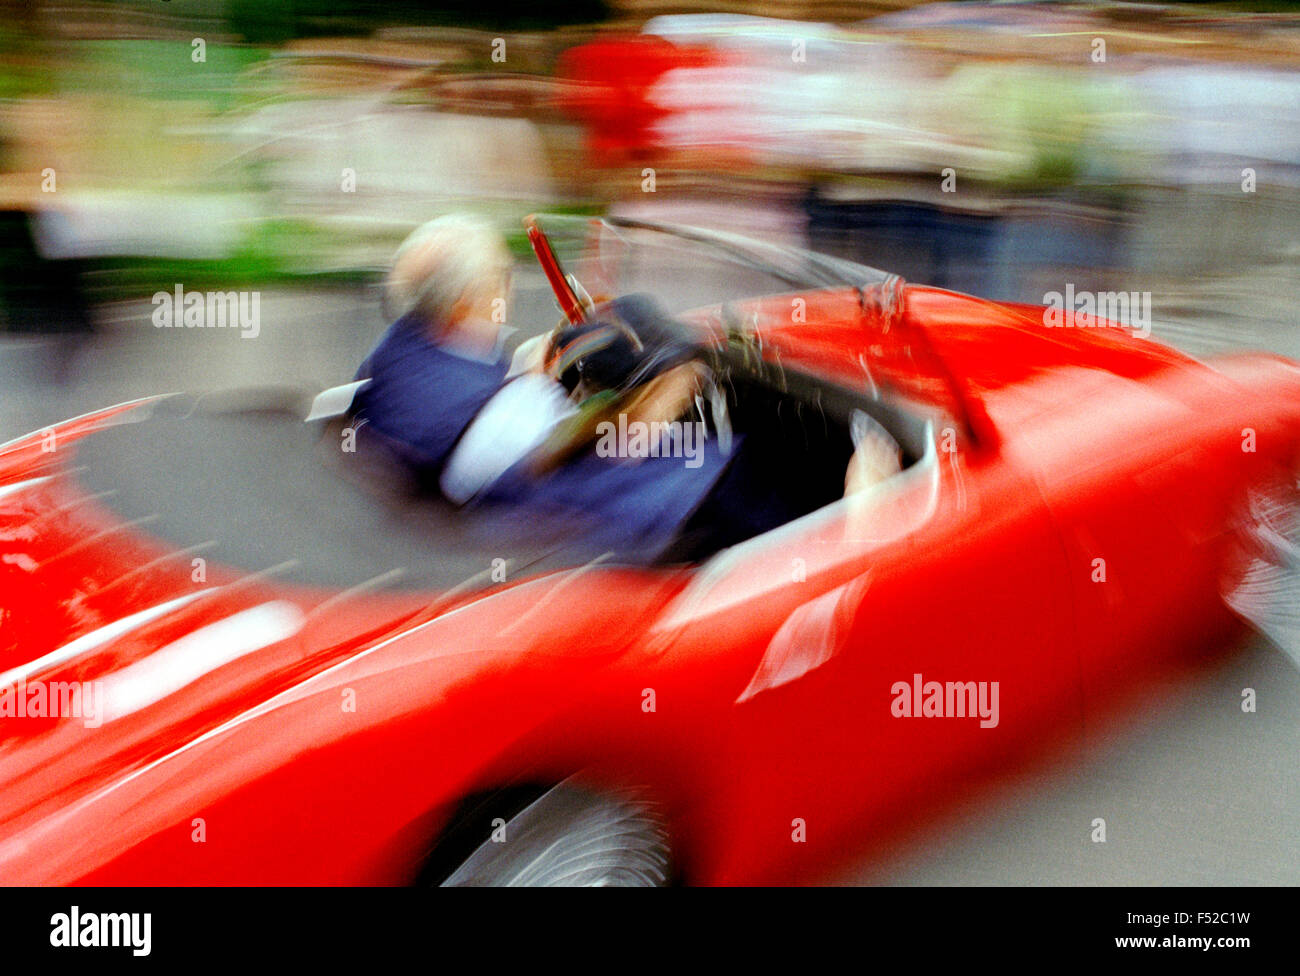 Italy, Lombardy, Meeting of Vintage Car. - Stock Image